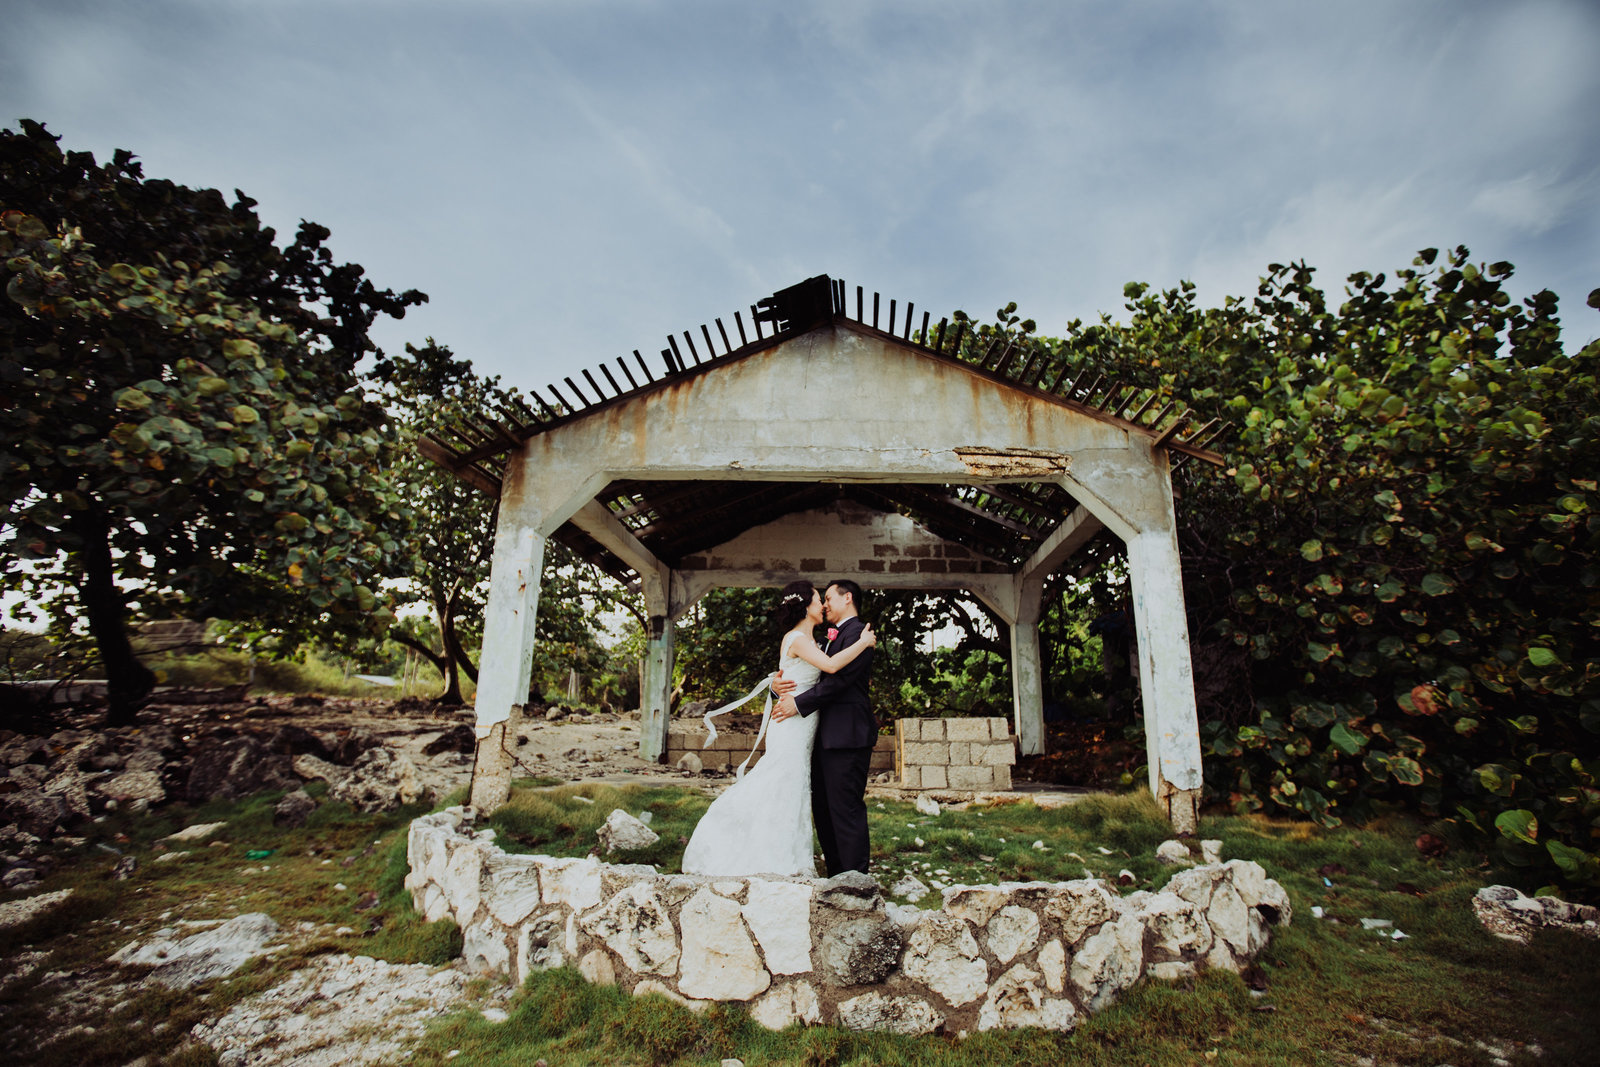 Erica Kay Photography - Kevin & Jieun Wedding-278